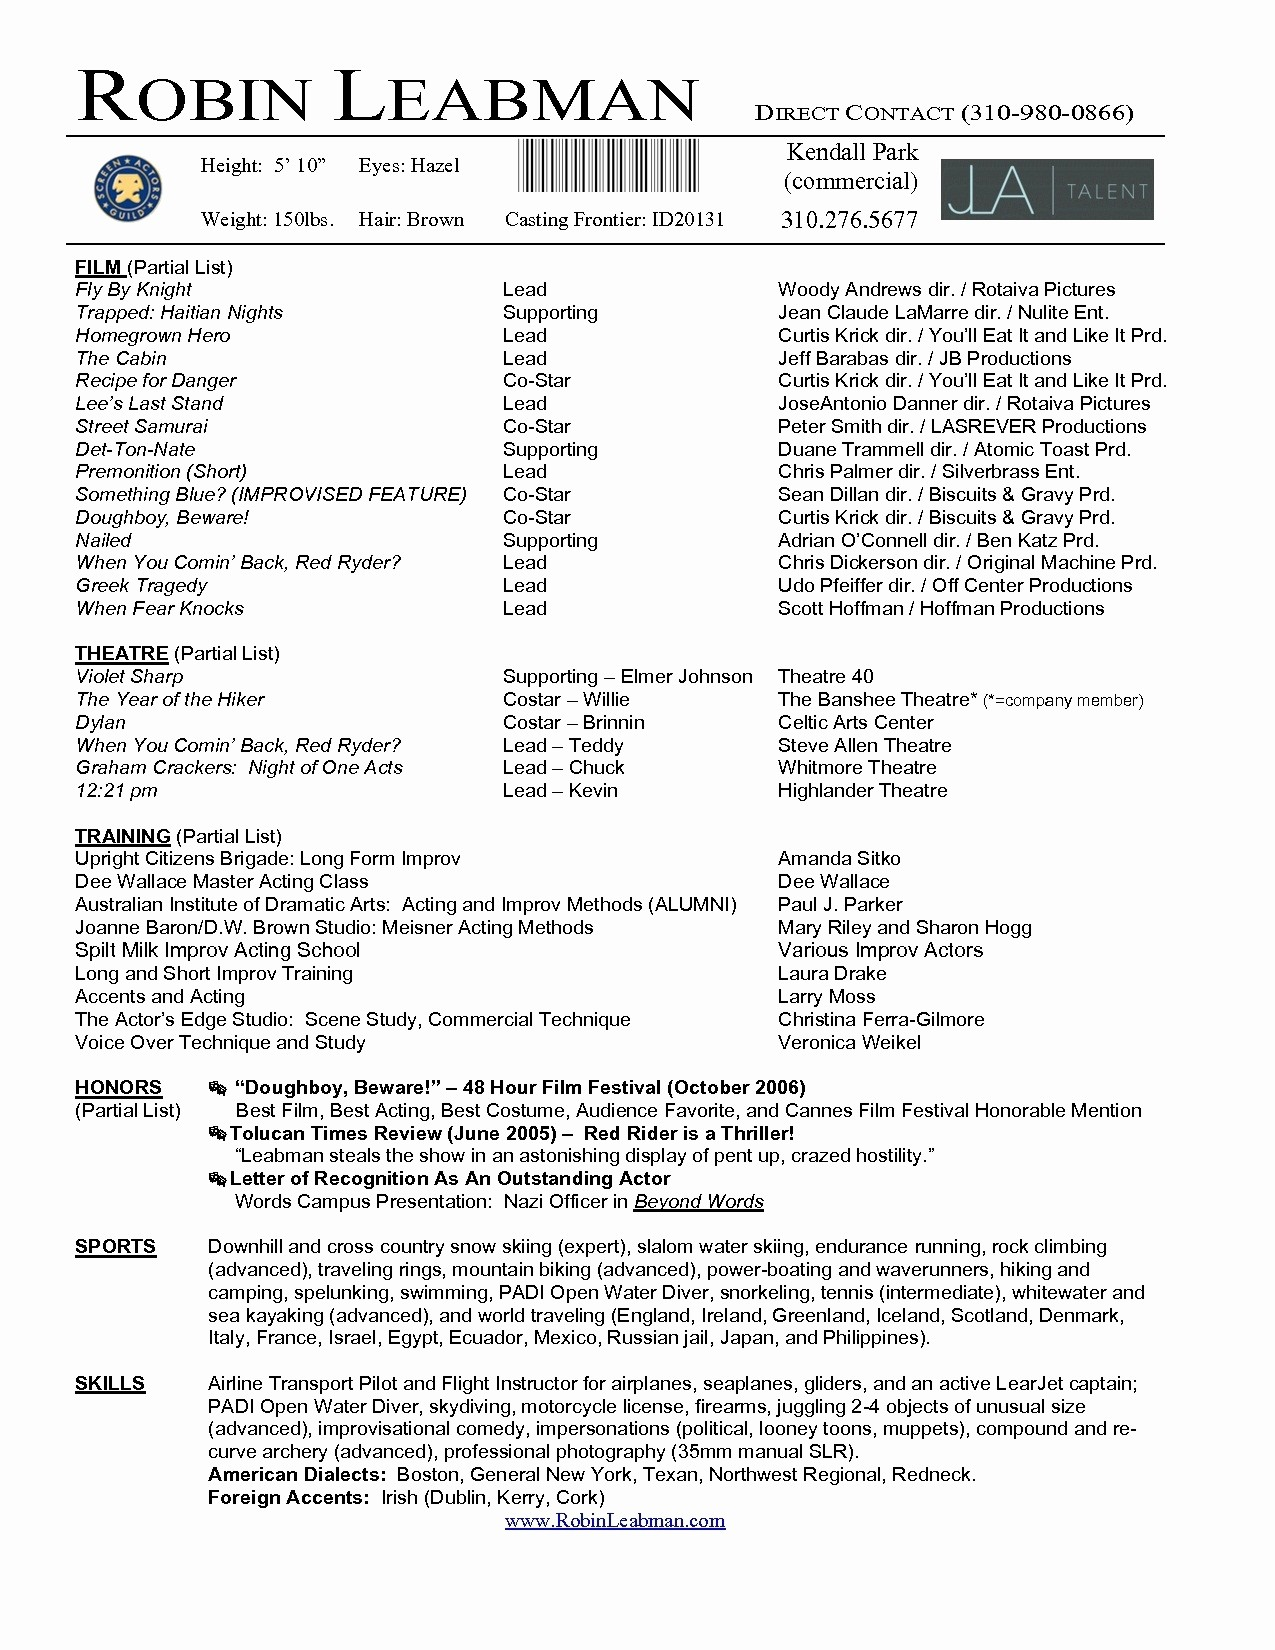 Microsoft Word Resume Template 2017 Awesome Acting Resume Template 2017